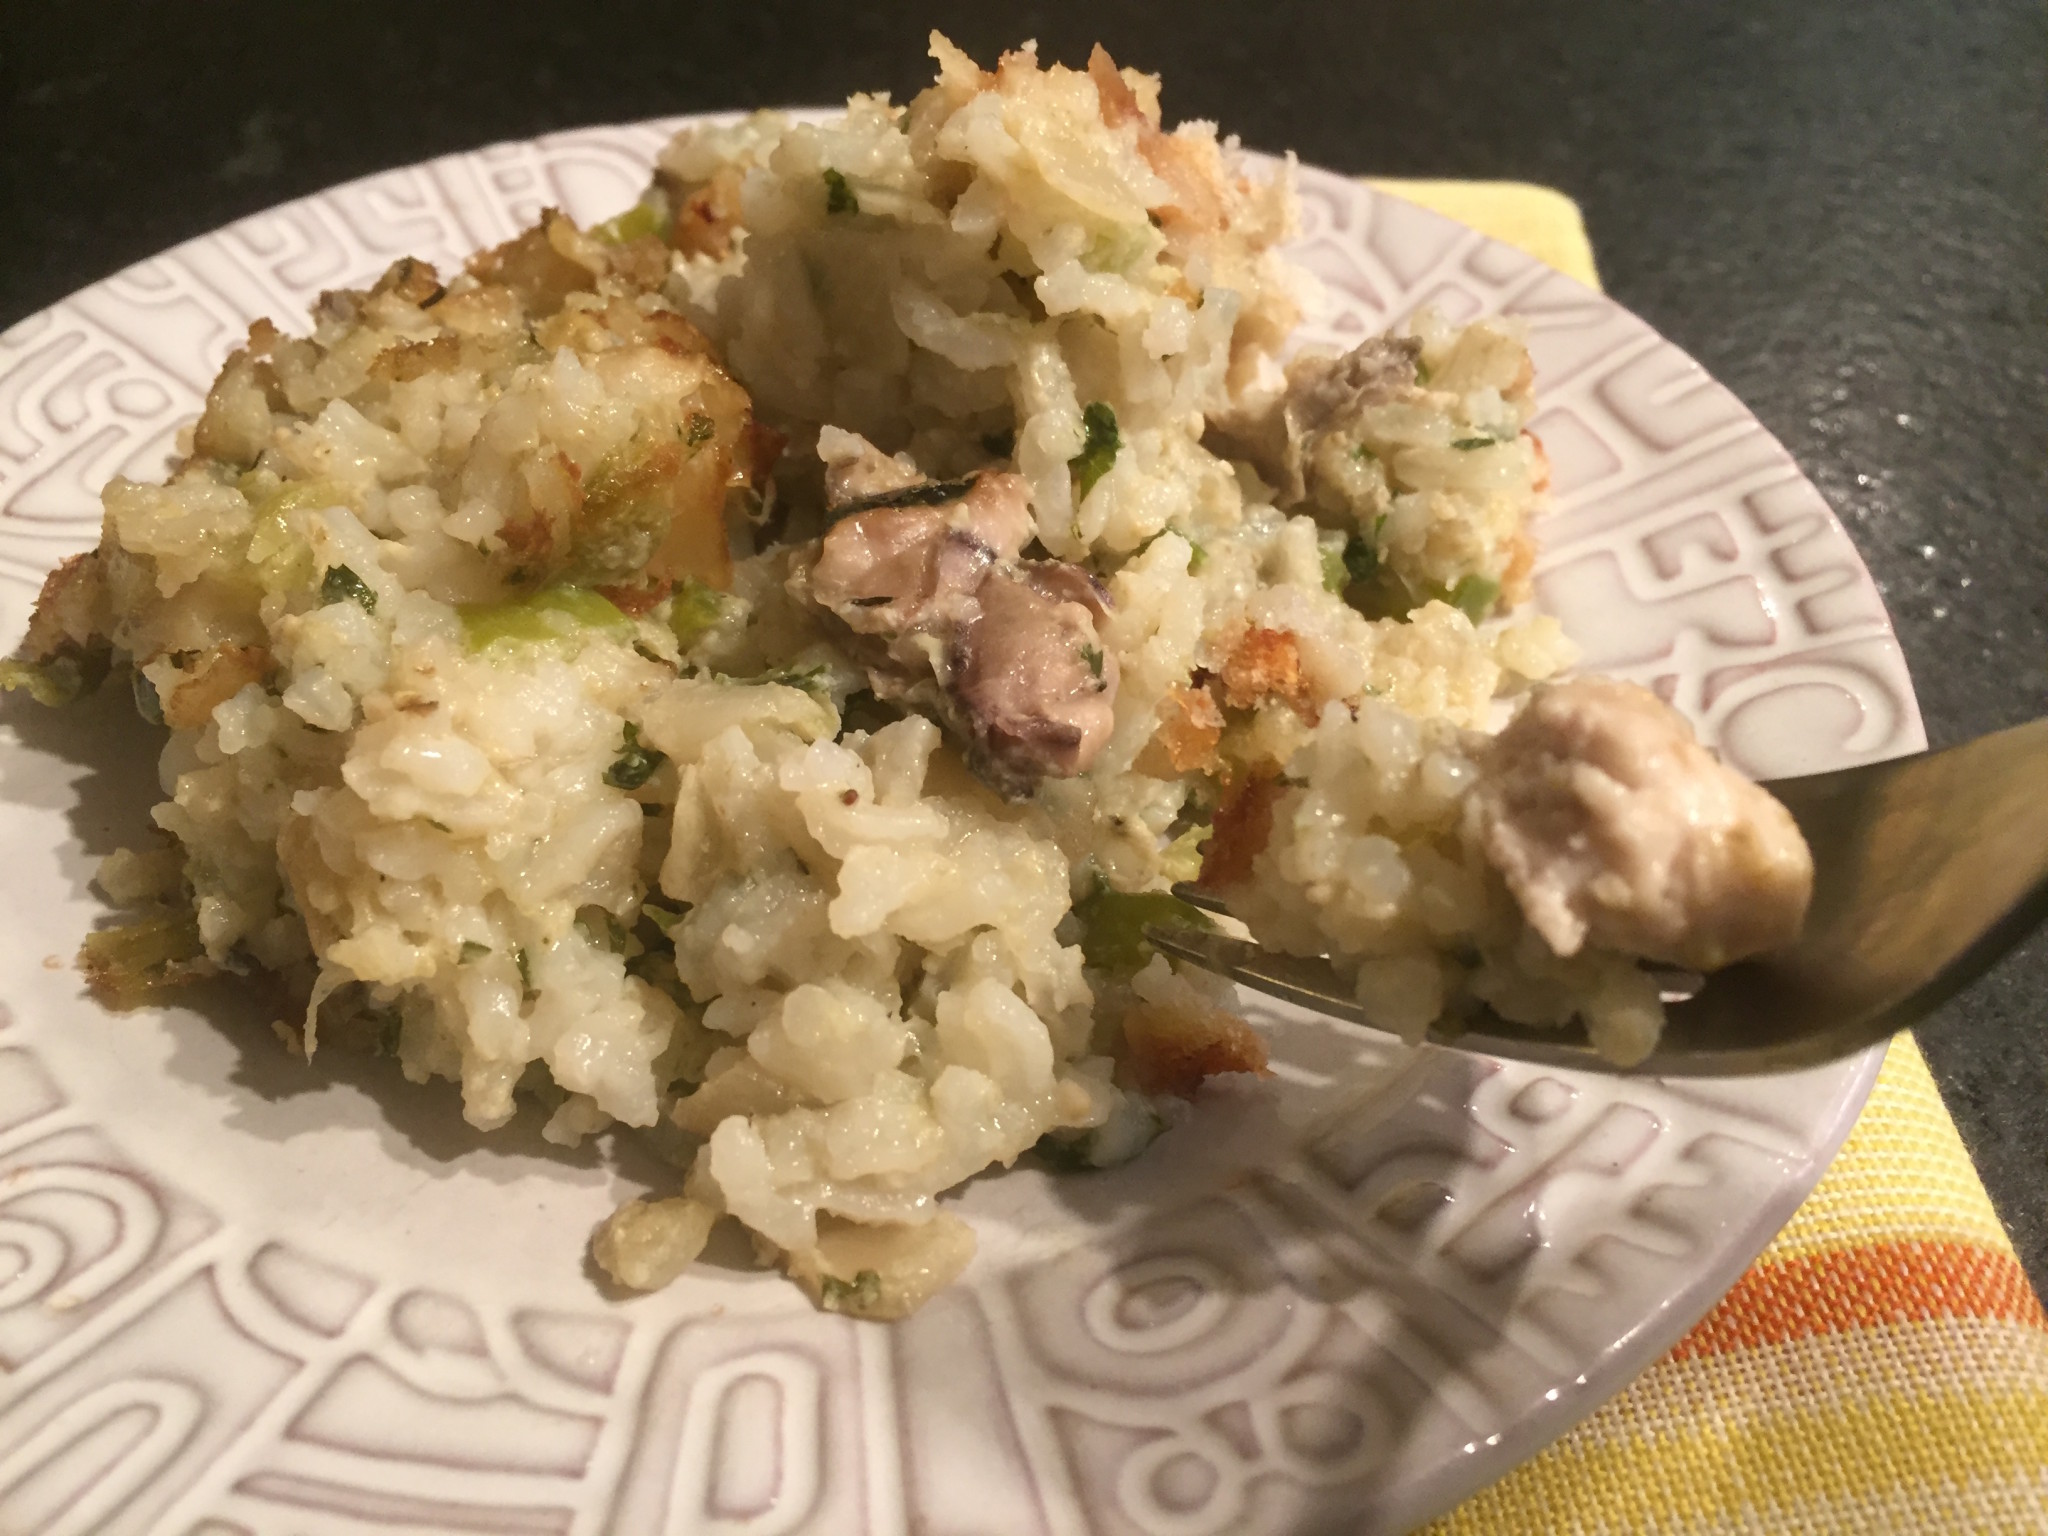 Serving of Craig Claiborne's oyster and rice dressing recipe from the New York Times (1987).